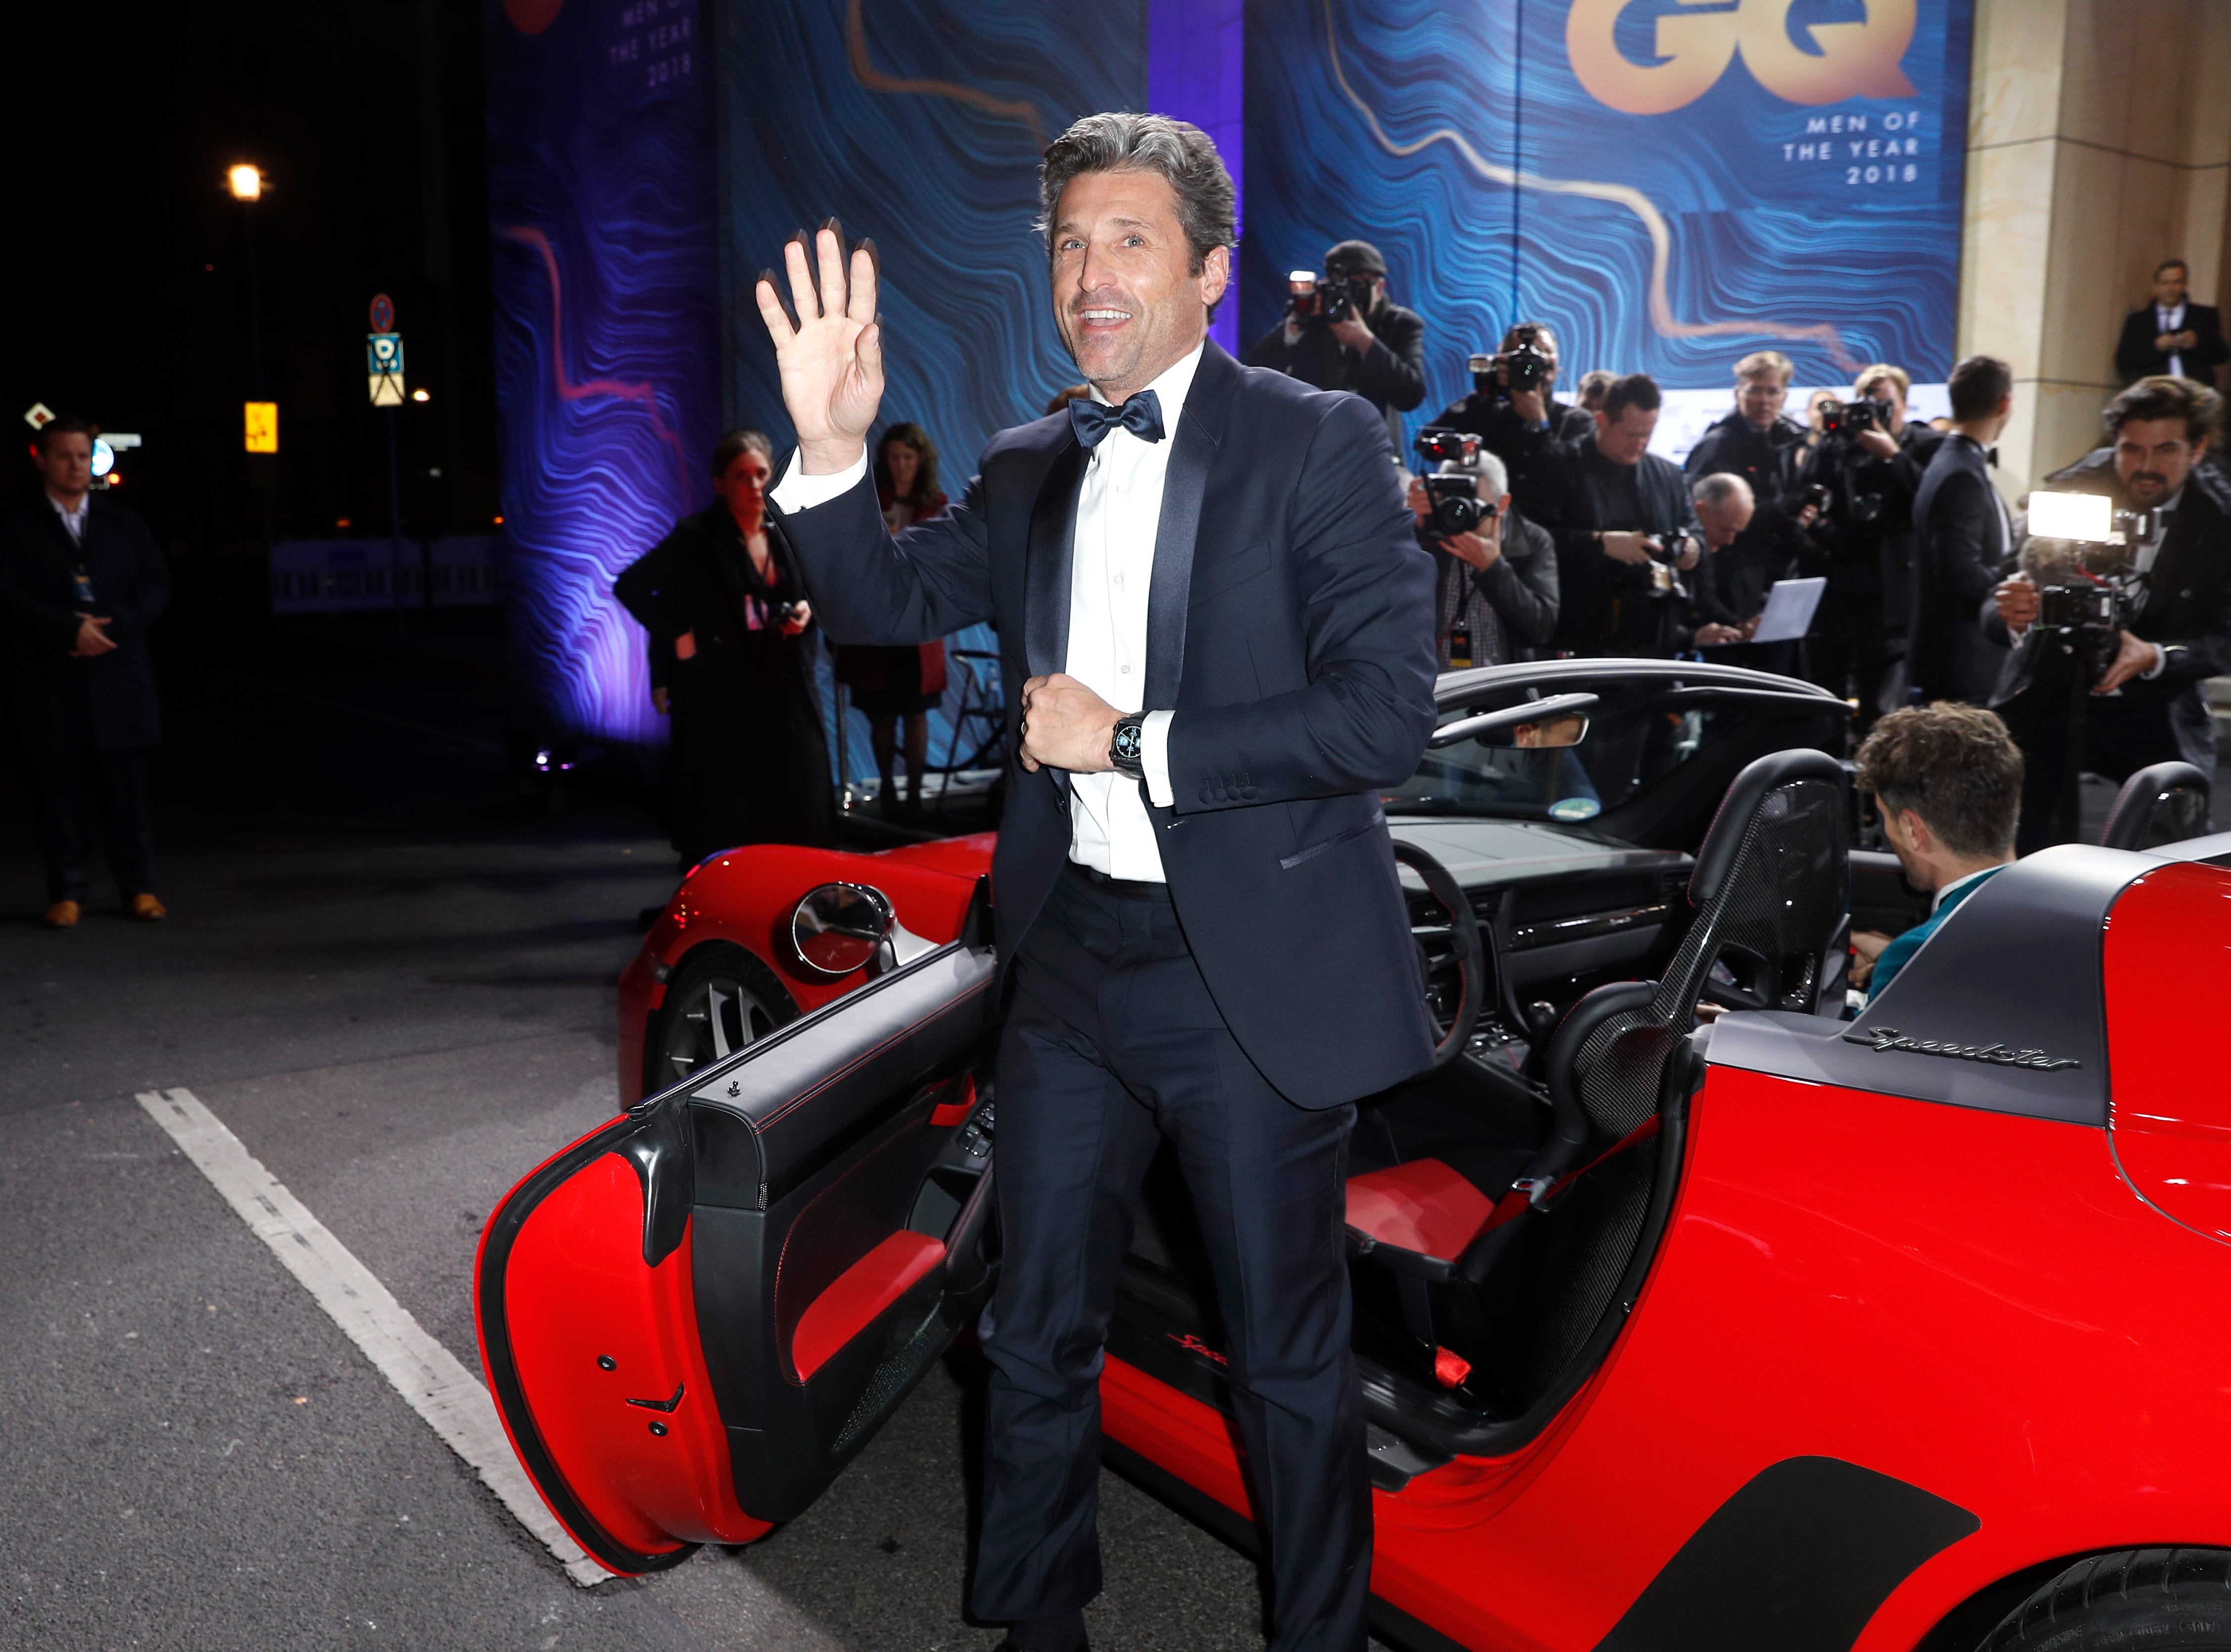 BERLIN, GERMANY - NOVEMBER 08:  Patrick Dempsey arrives for the 20th GQ Men of the Year Award at Komische Oper on November 8, 2018 in Berlin, Germany.  (Photo by Sebastian Reuter/Getty Images for GQ Germany) ORG XMIT: 775255967 ORIG FILE ID: 1059192576